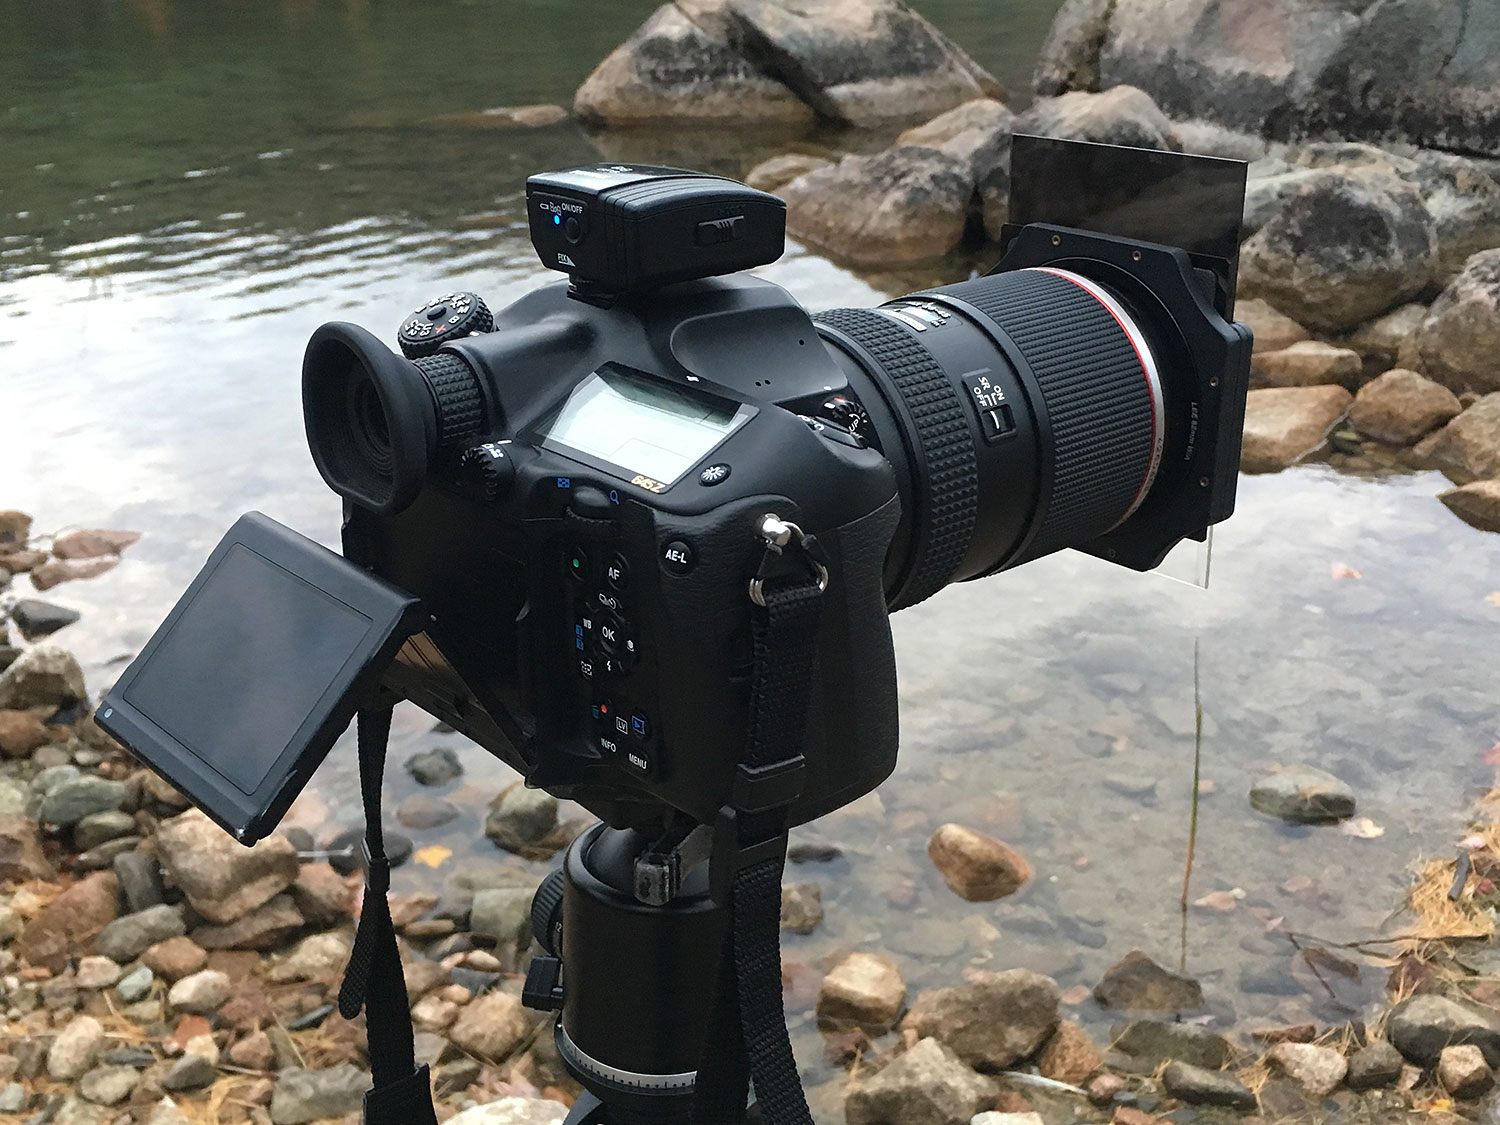 The Pentax 645Z in action at Jordan Pond